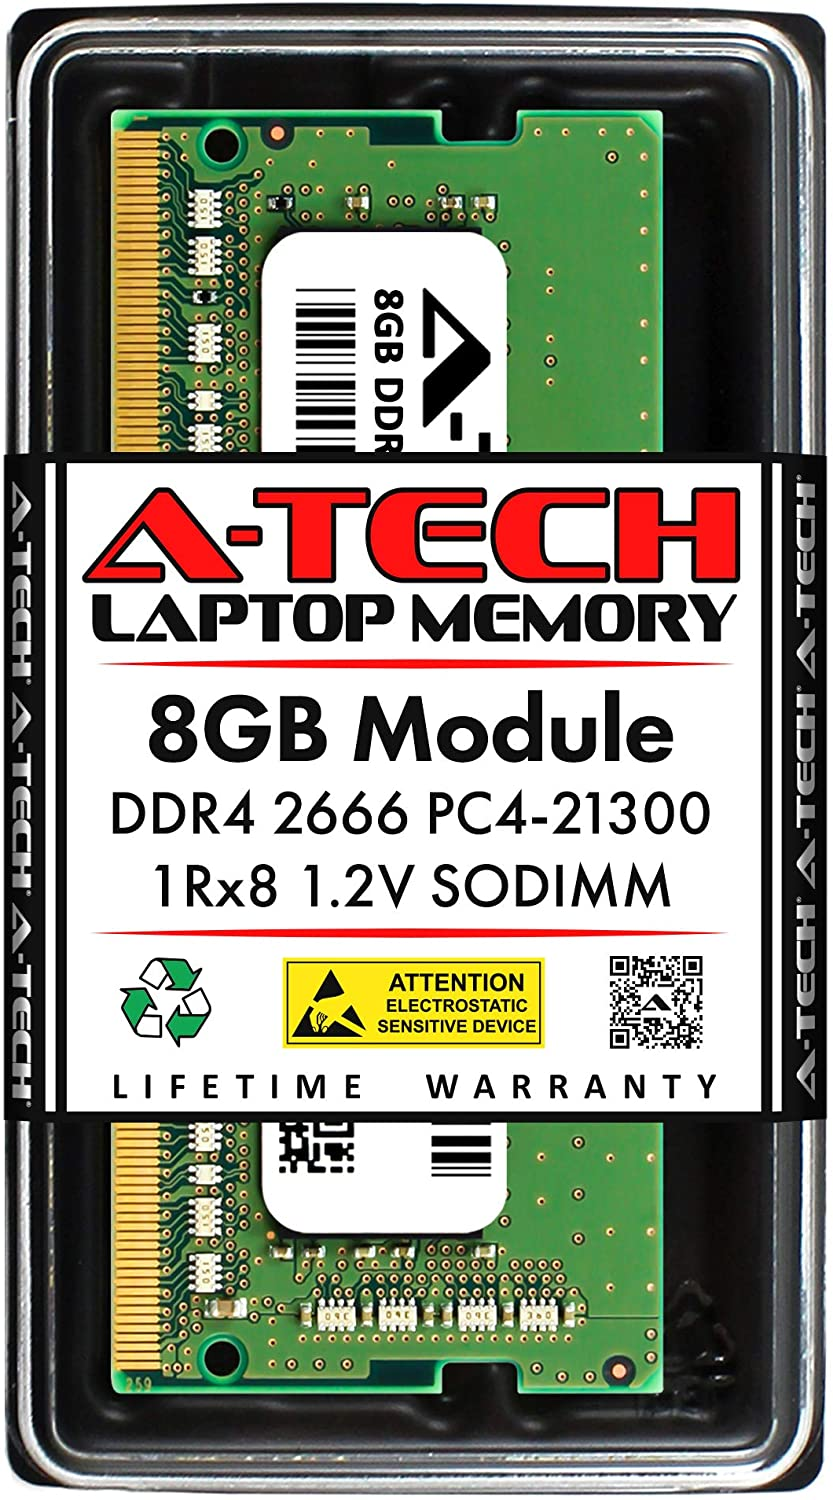 A-Tech 8GB DDR4 2666MHz SODIMM PC4-21300 1Rx8 Single Rank 260-Pin CL19 1.2V Non-ECC Unbuffered Notebook Laptop RAM Memory Upgrade Module